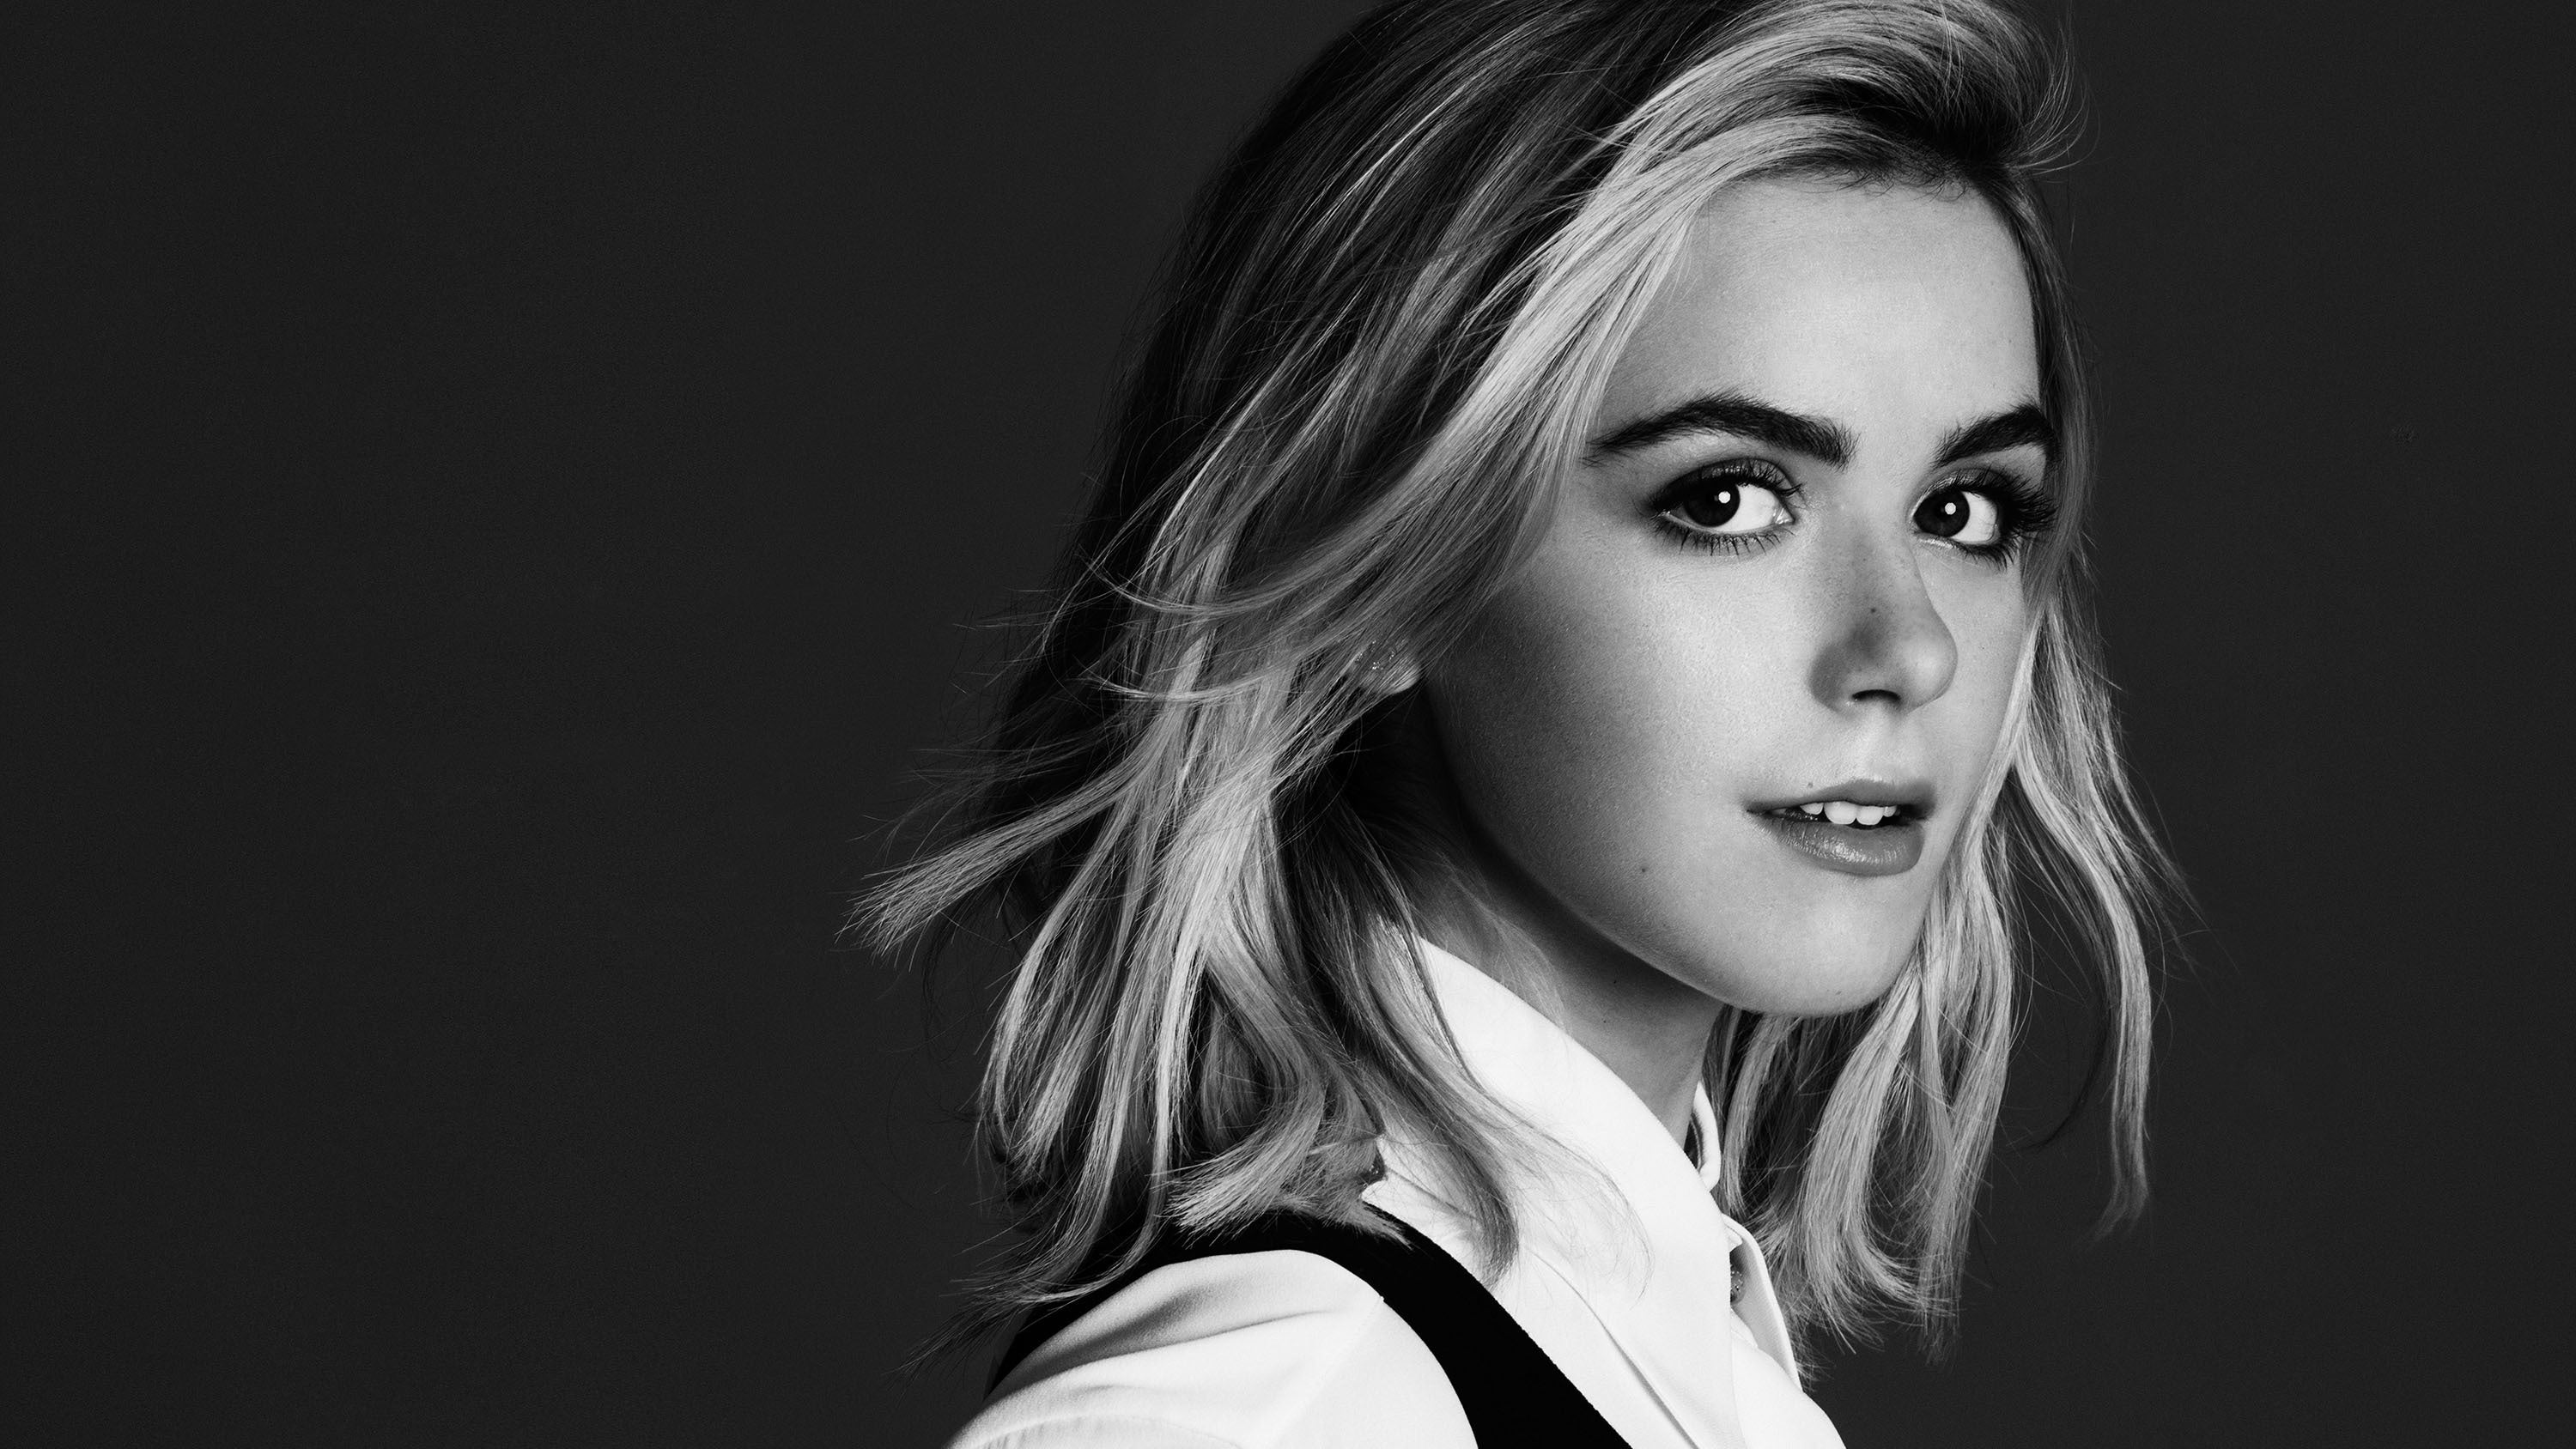 Mad Men's Kiernan Shipka Will Play Sabrina The Teenage Witch On Netflix